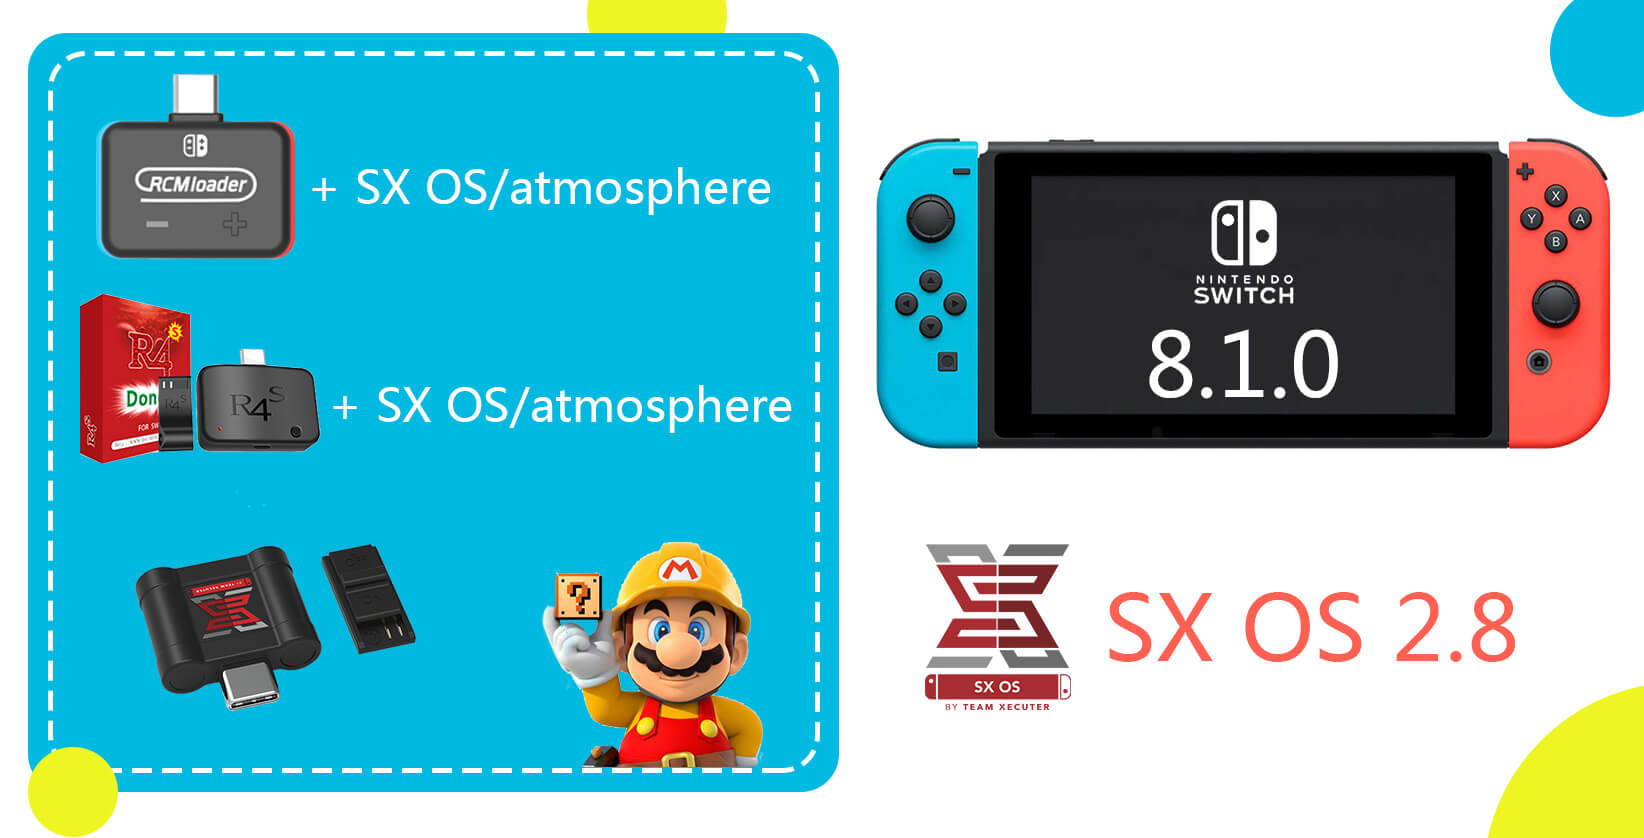 Confirmed: SX OS 2 8 can support Nintendo Switch 8 1 0